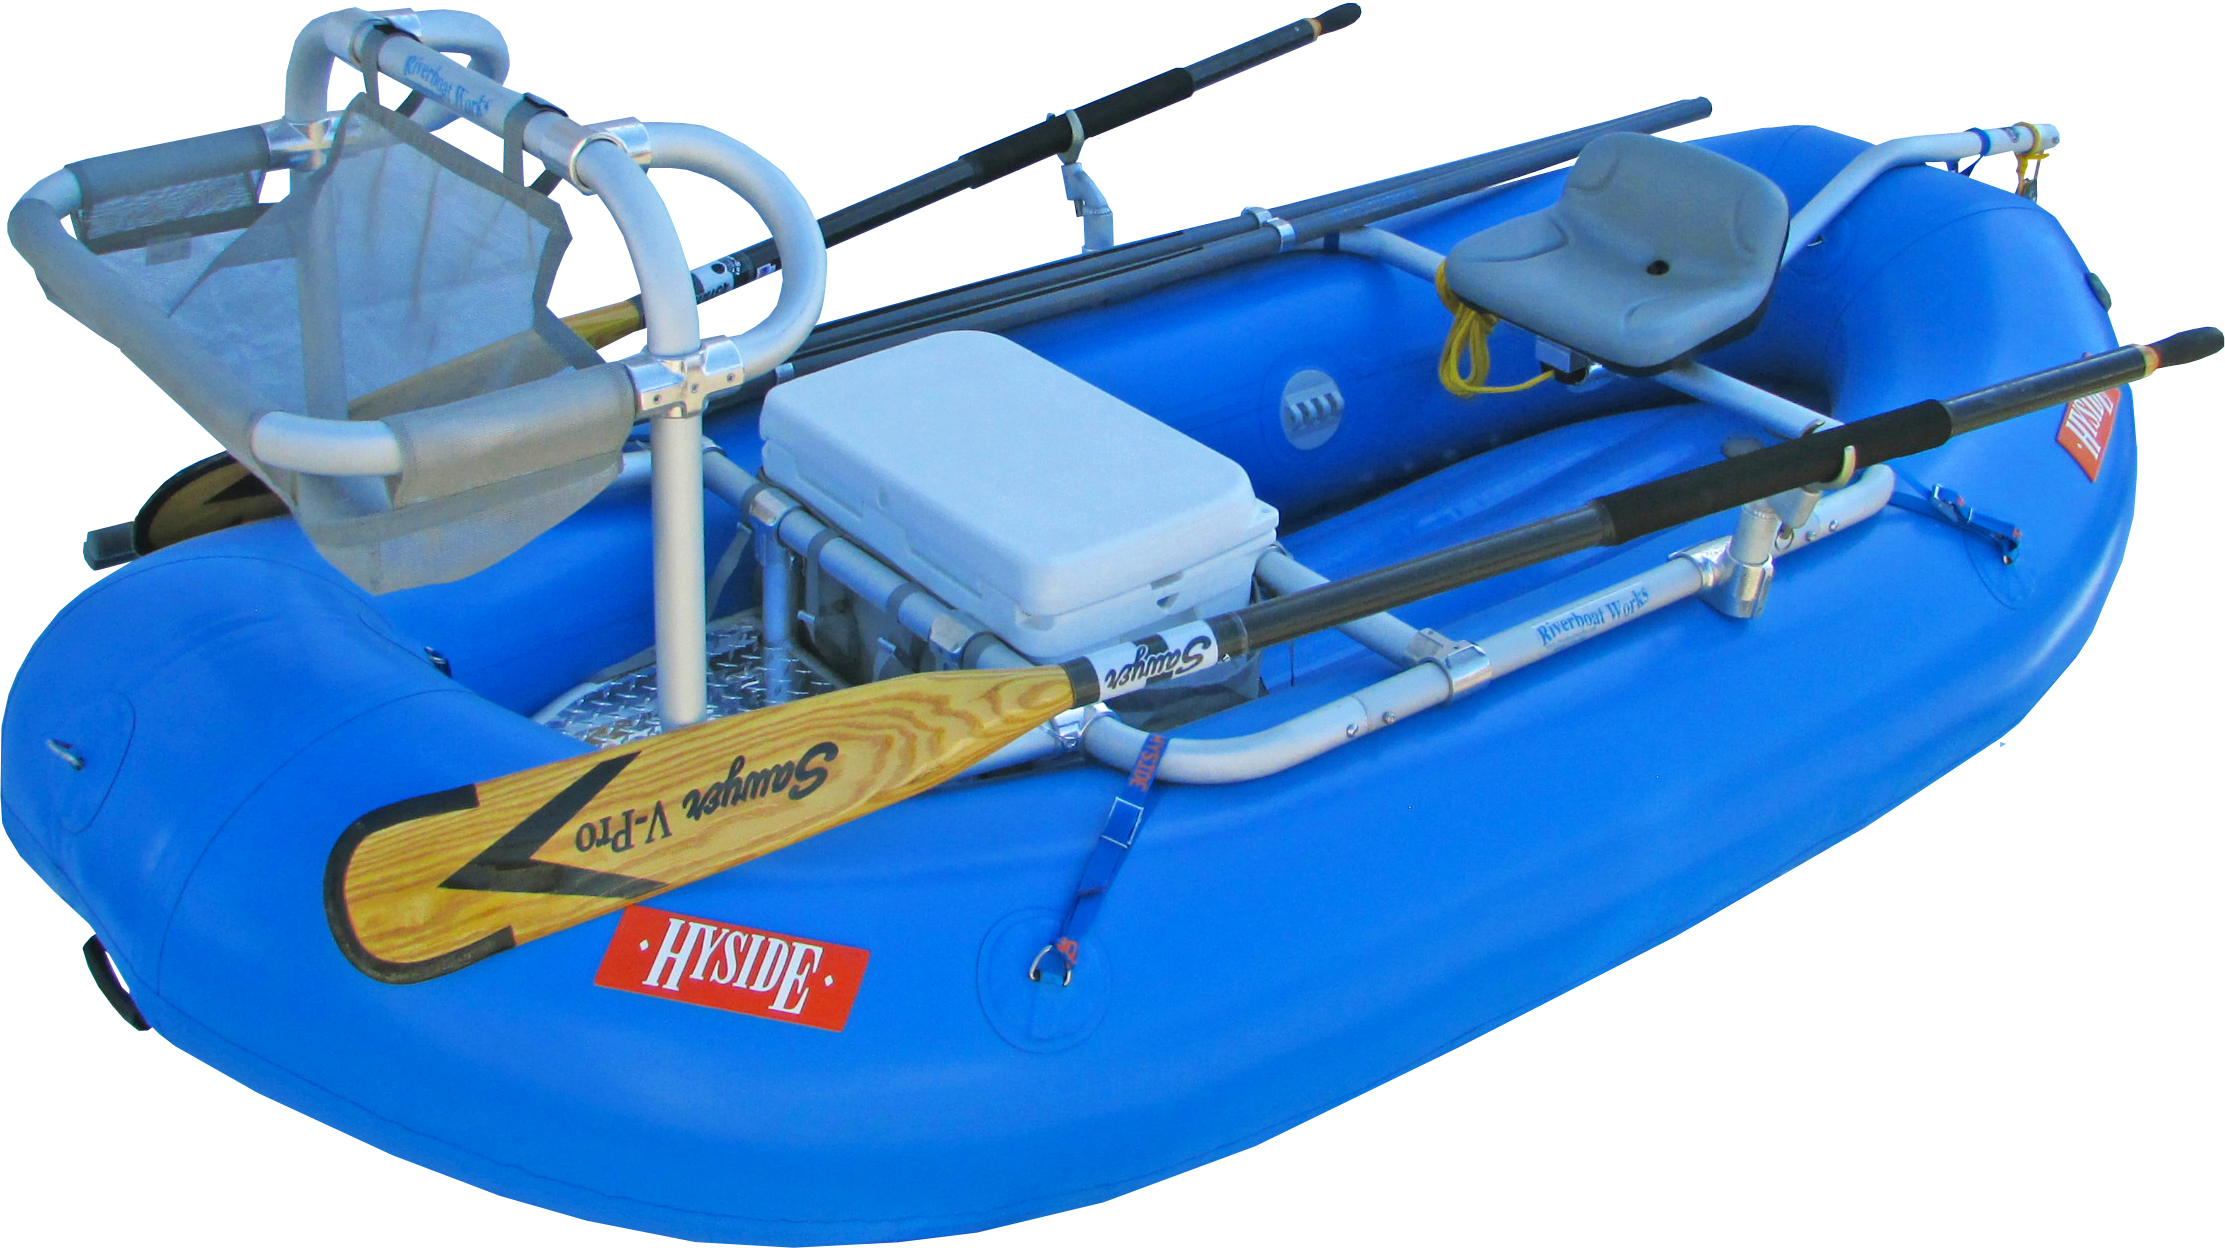 Click image for larger version  Name:raft2.jpg Views:358 Size:1.48 MB ID:9648